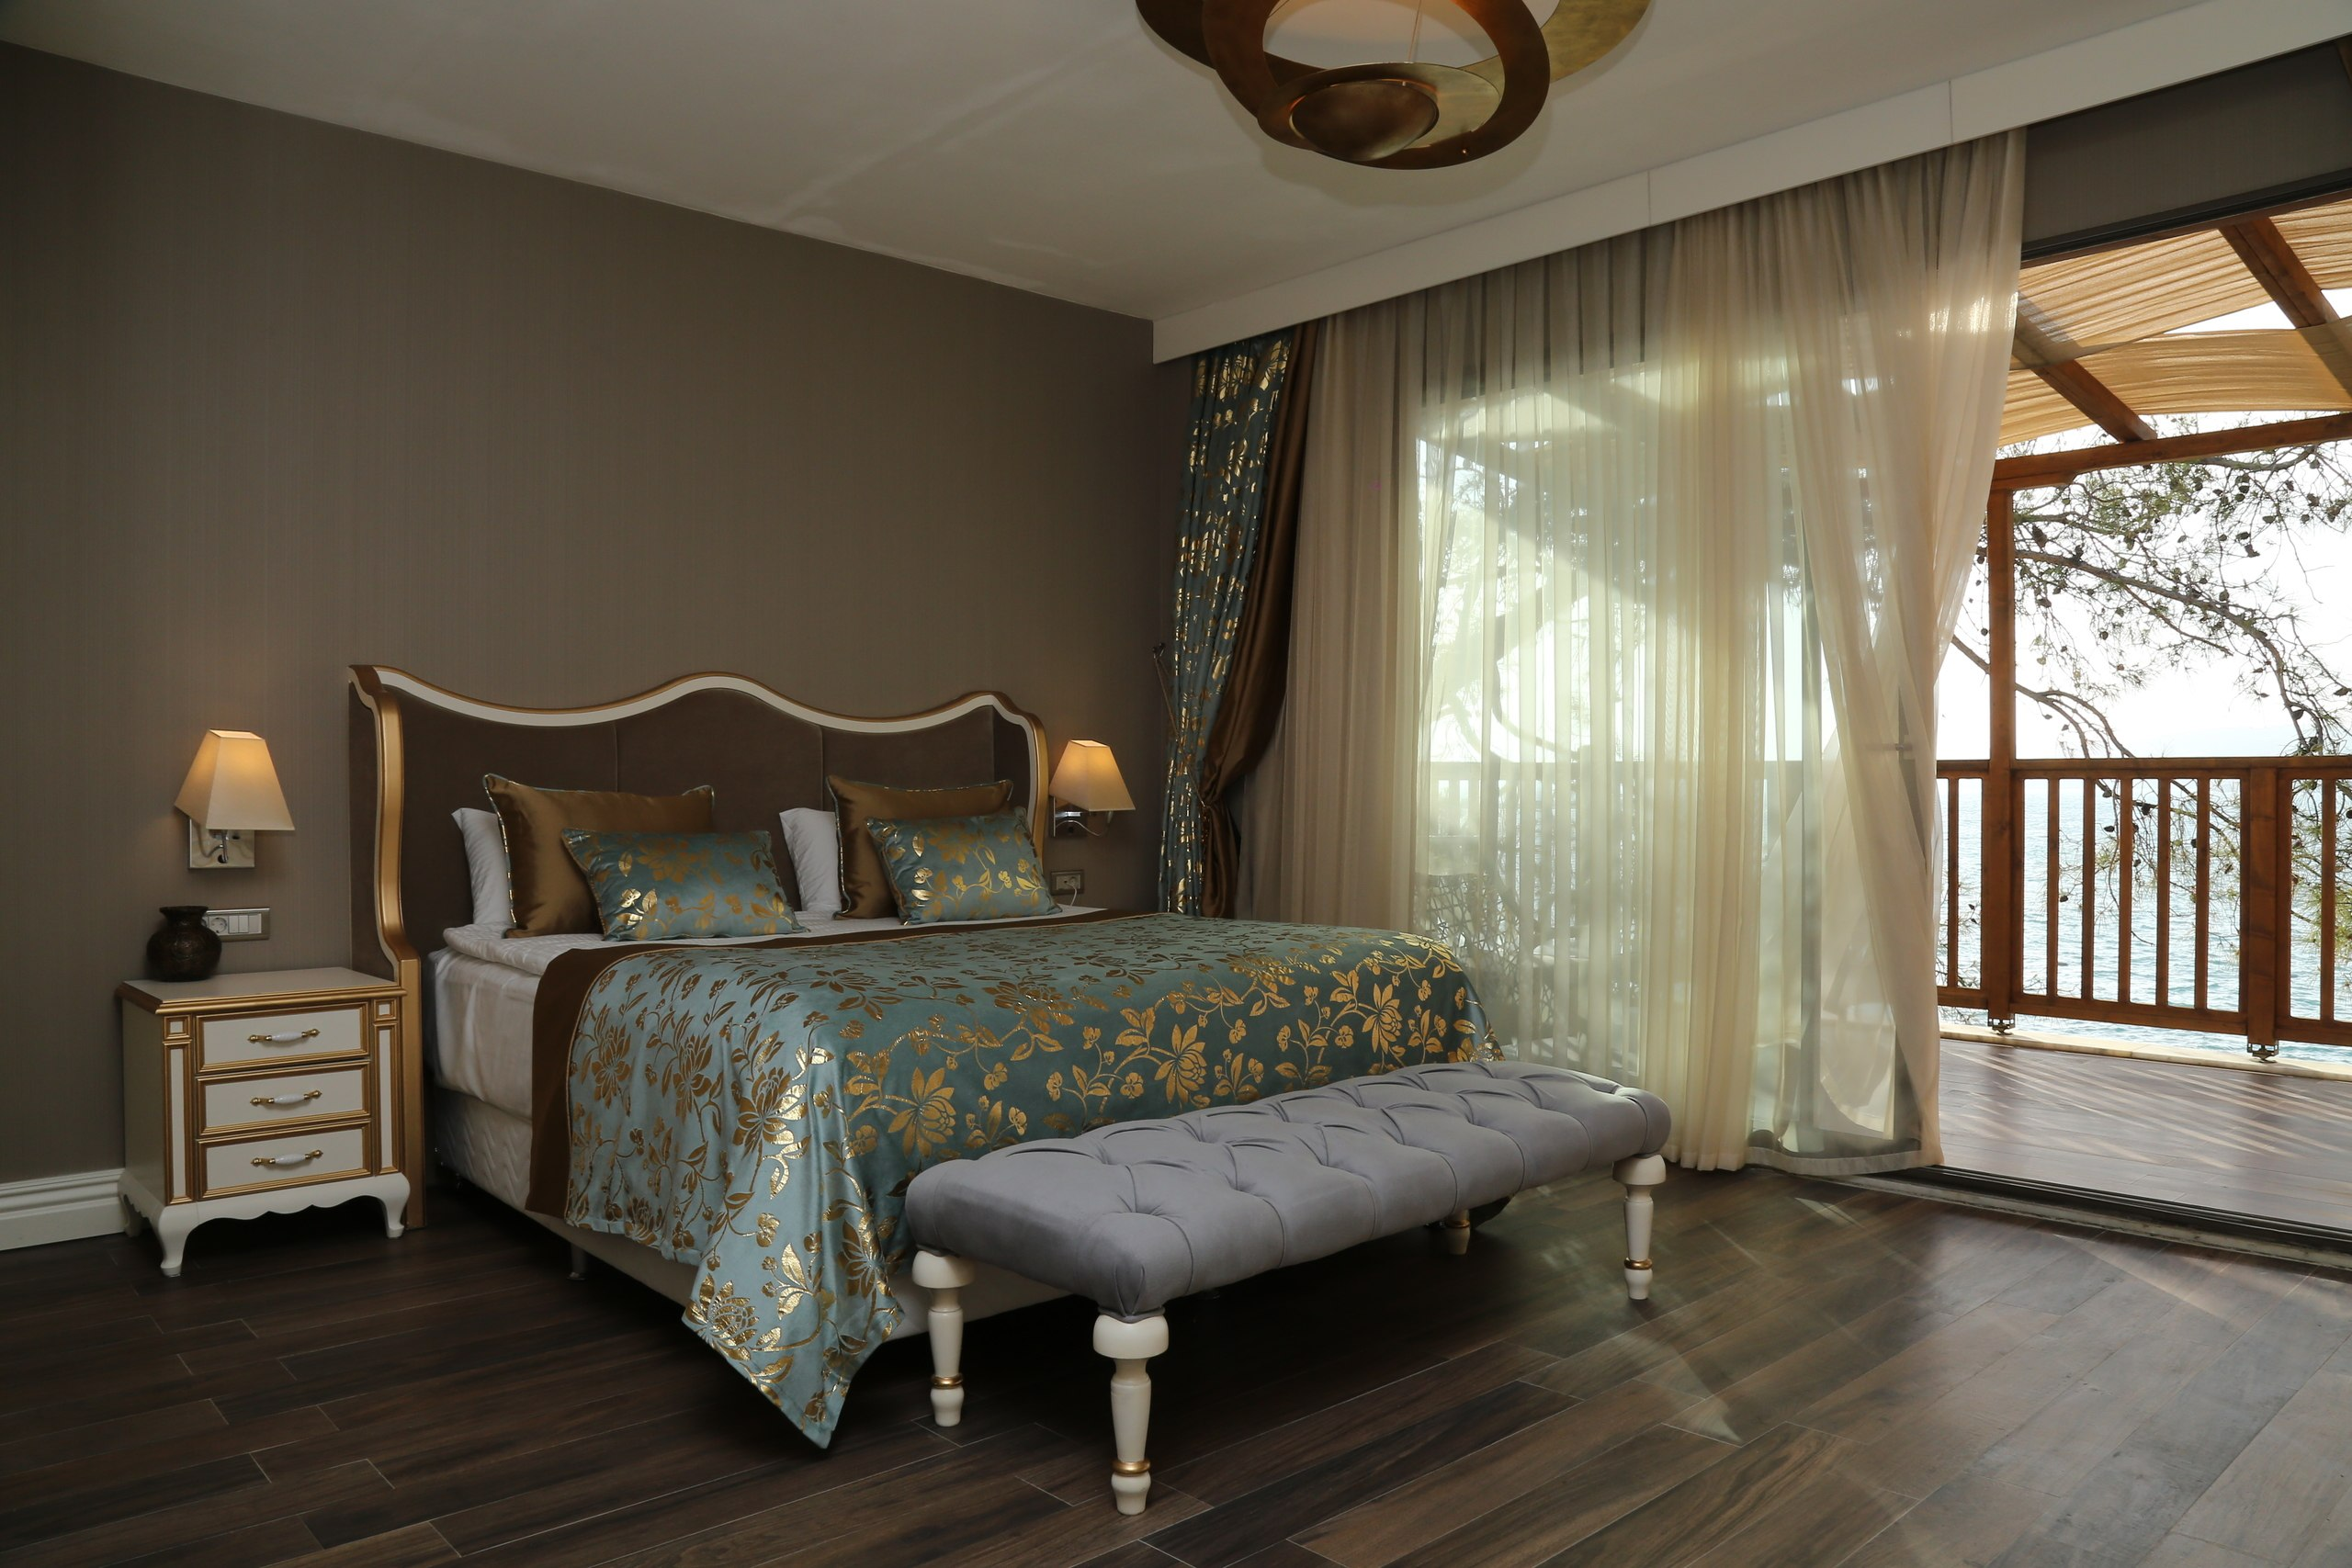 WOME DELUXE OTEL249332